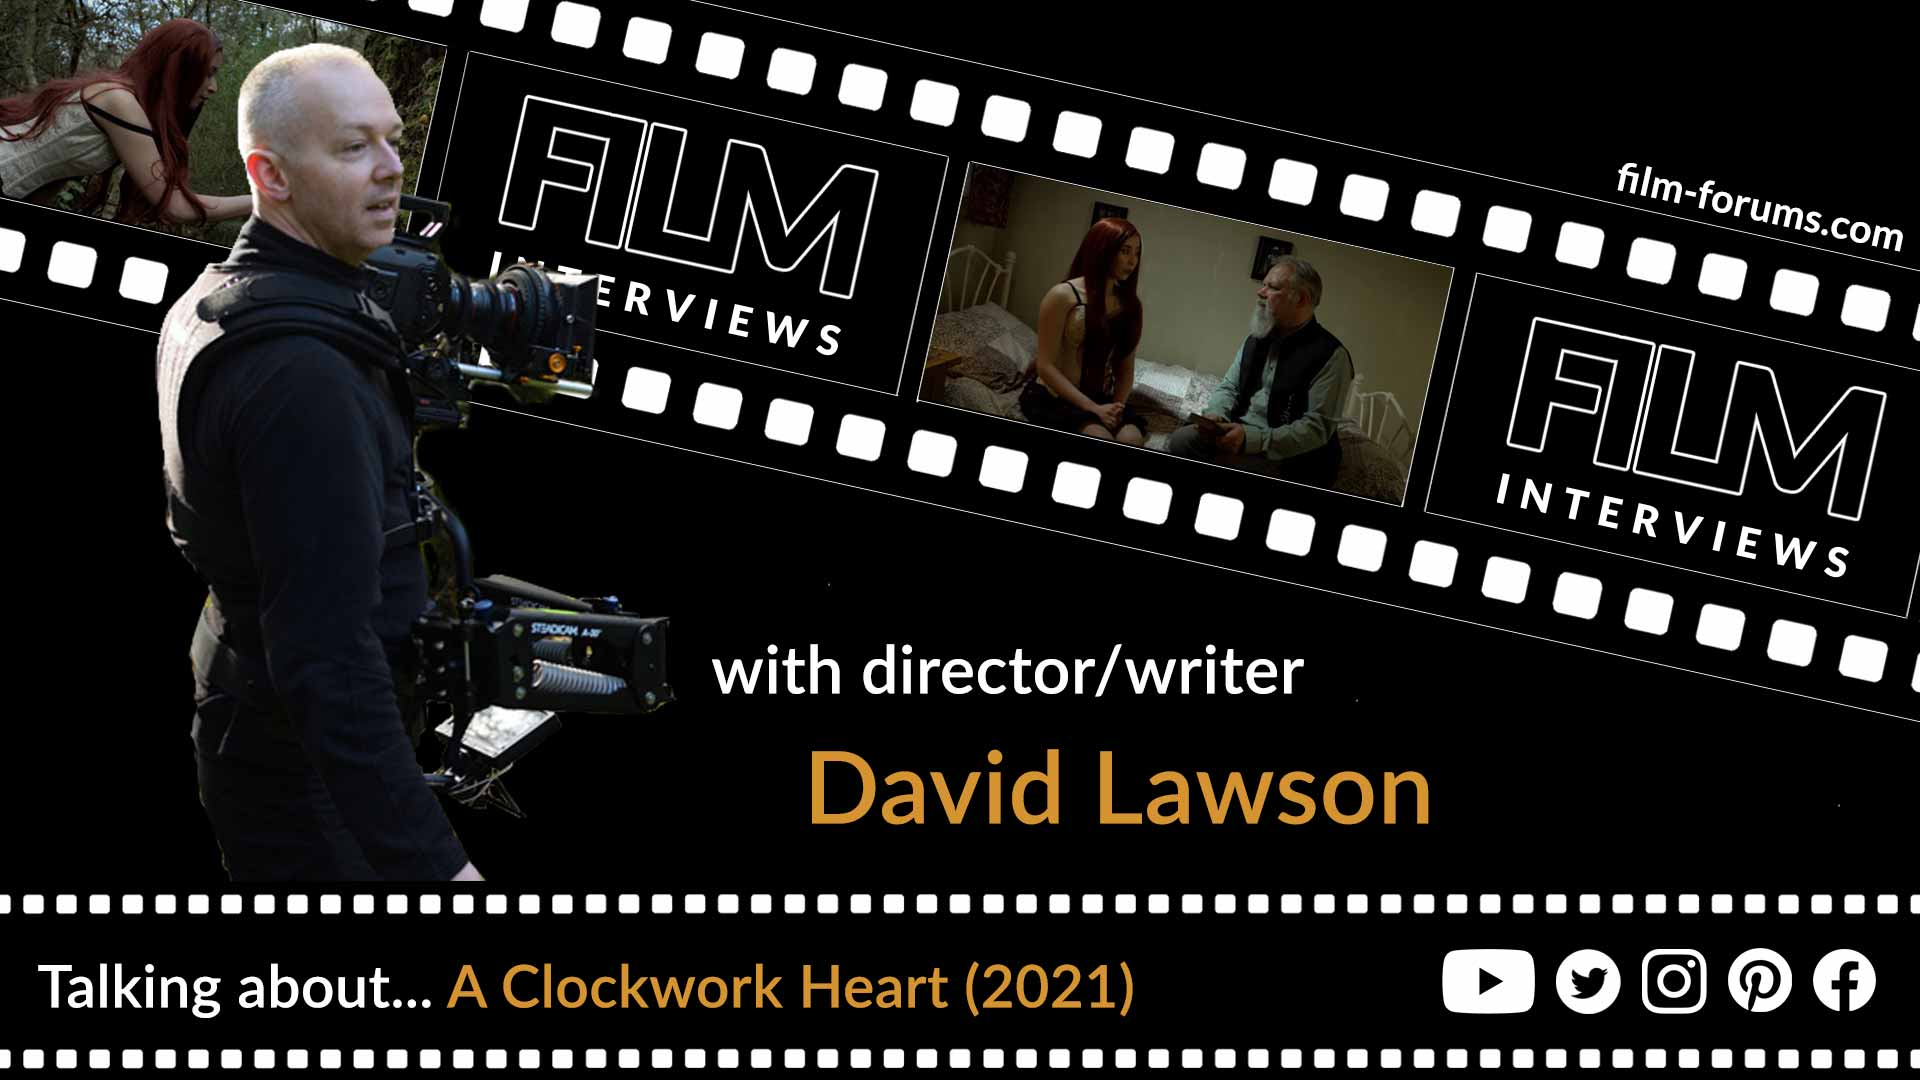 David Lawson, director of A Clockwork Heart (2021)